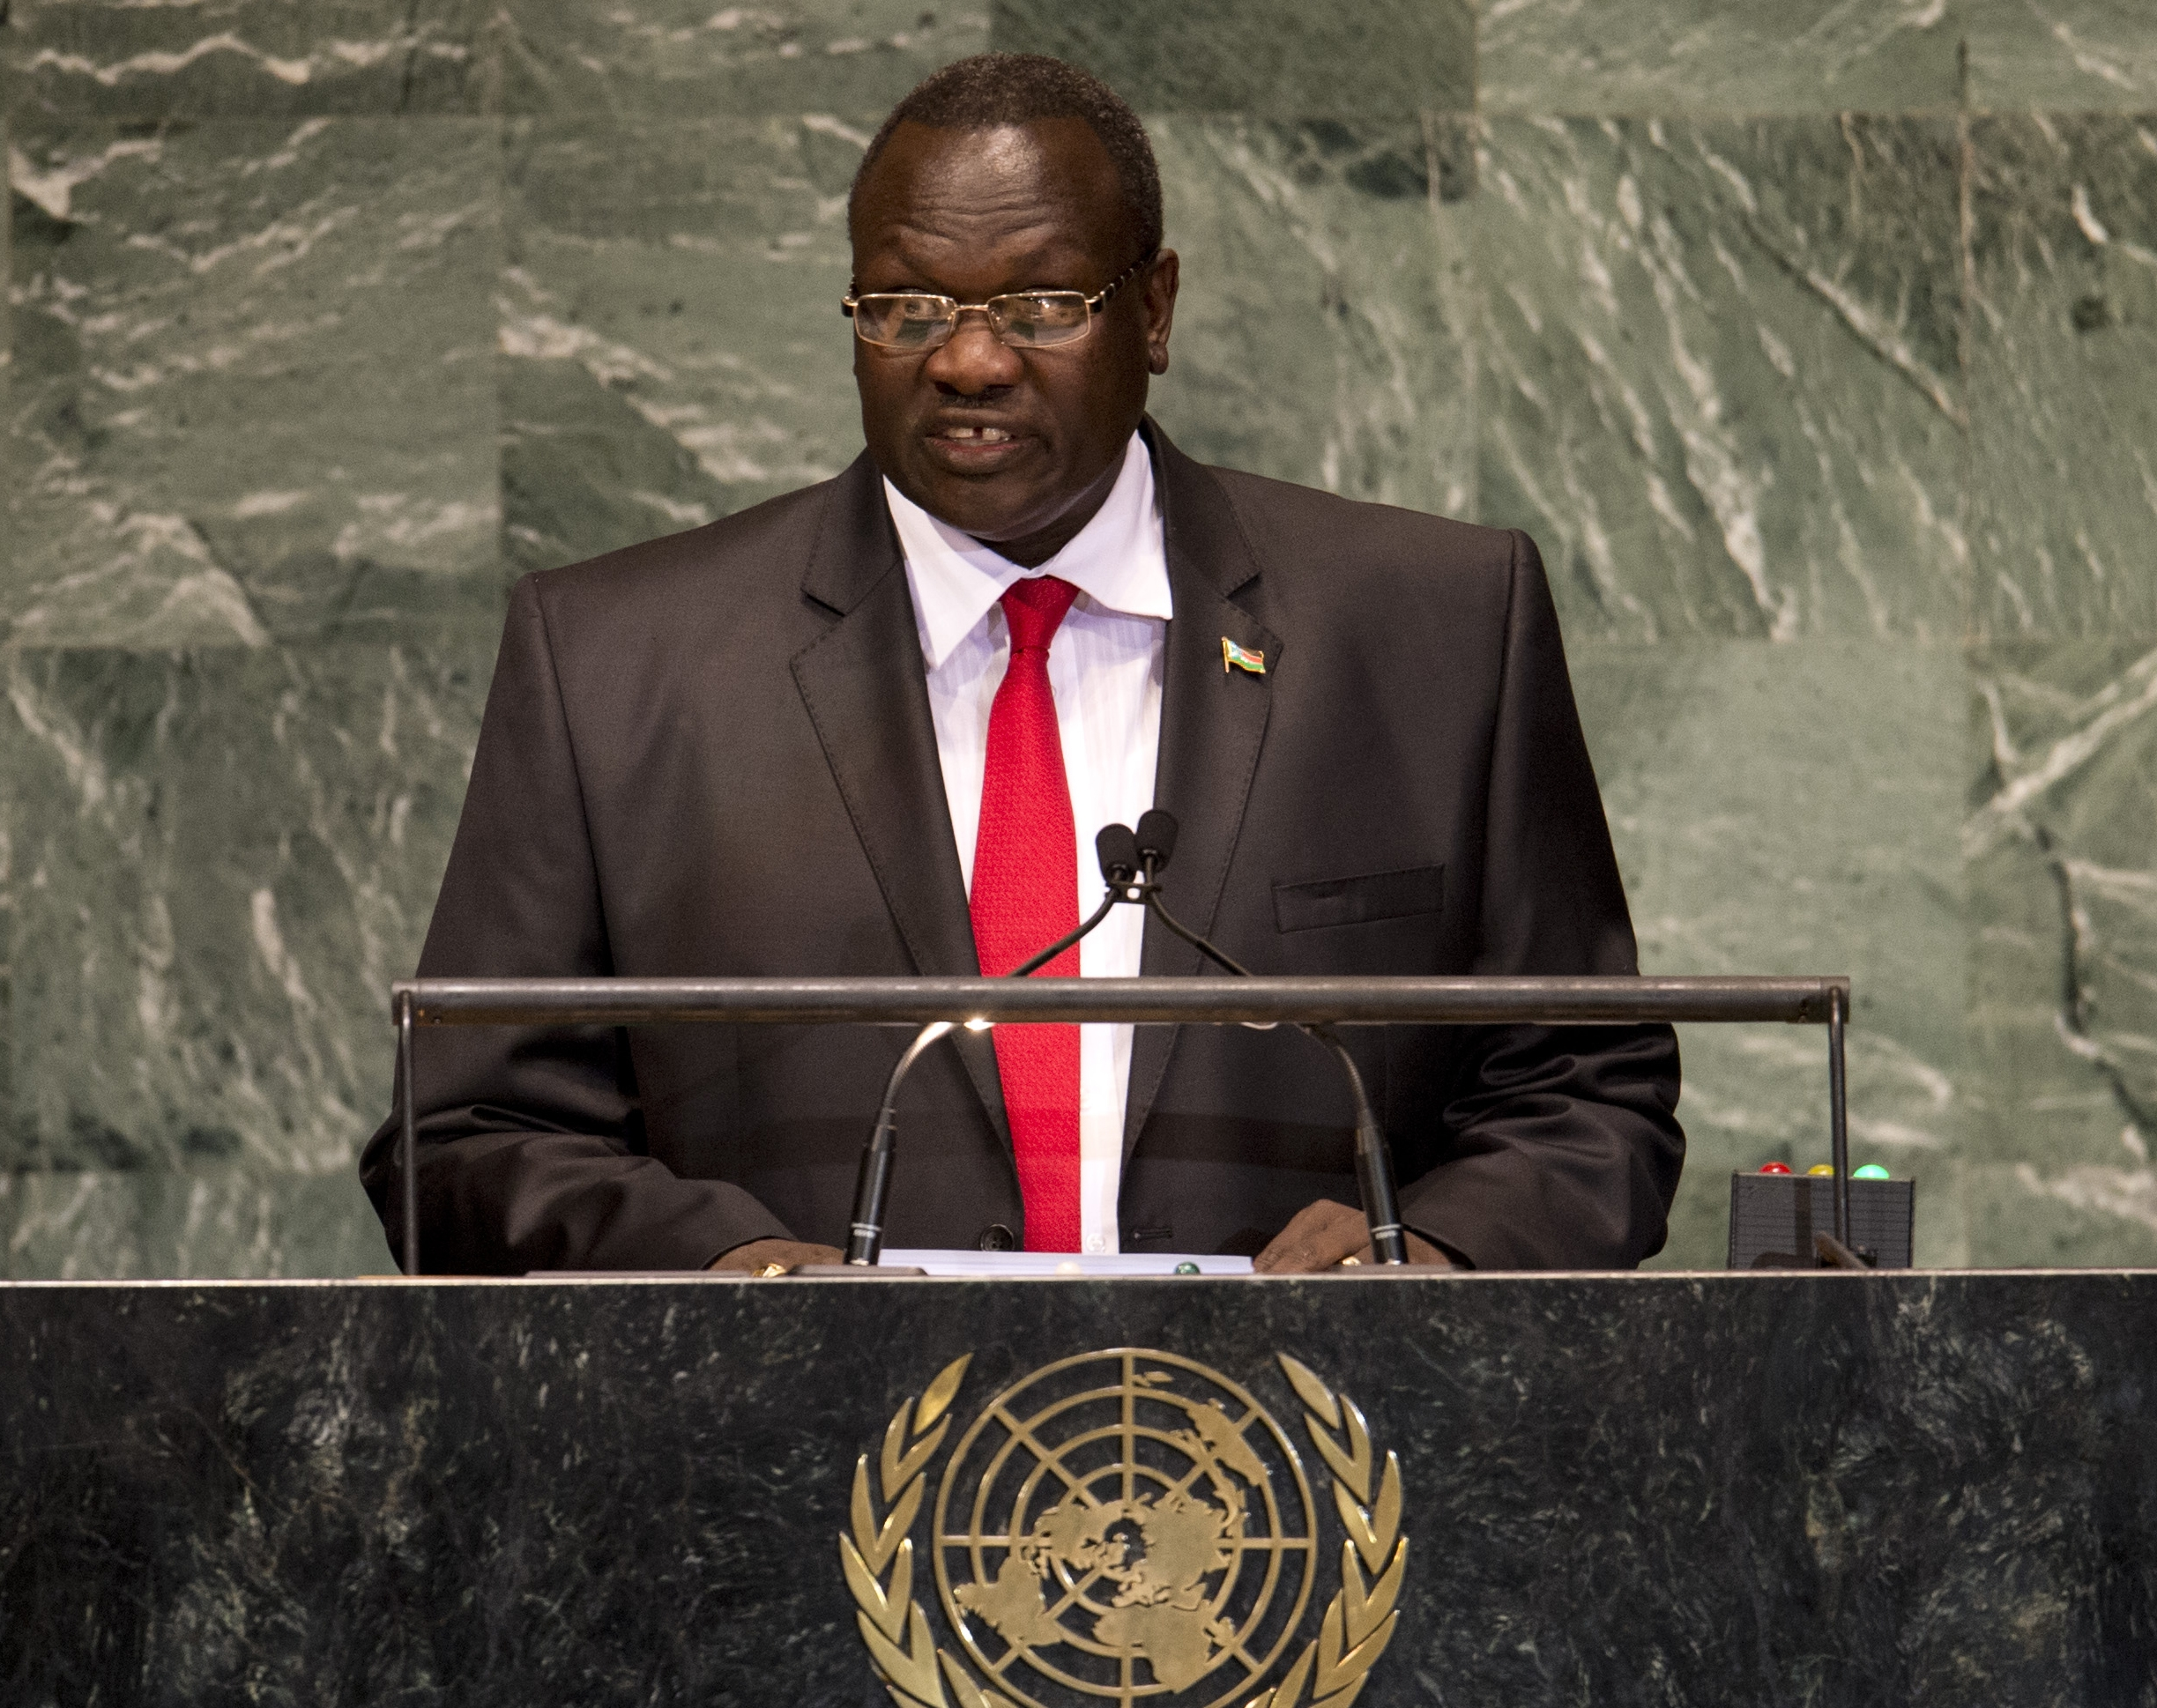 South Sudan's Vice President Riek Machar, here addressing the United Nations General Assembly meeting on Sept. 27, 2012, remains in hiding. Photo by Don Emmert/AFP/Getty Images